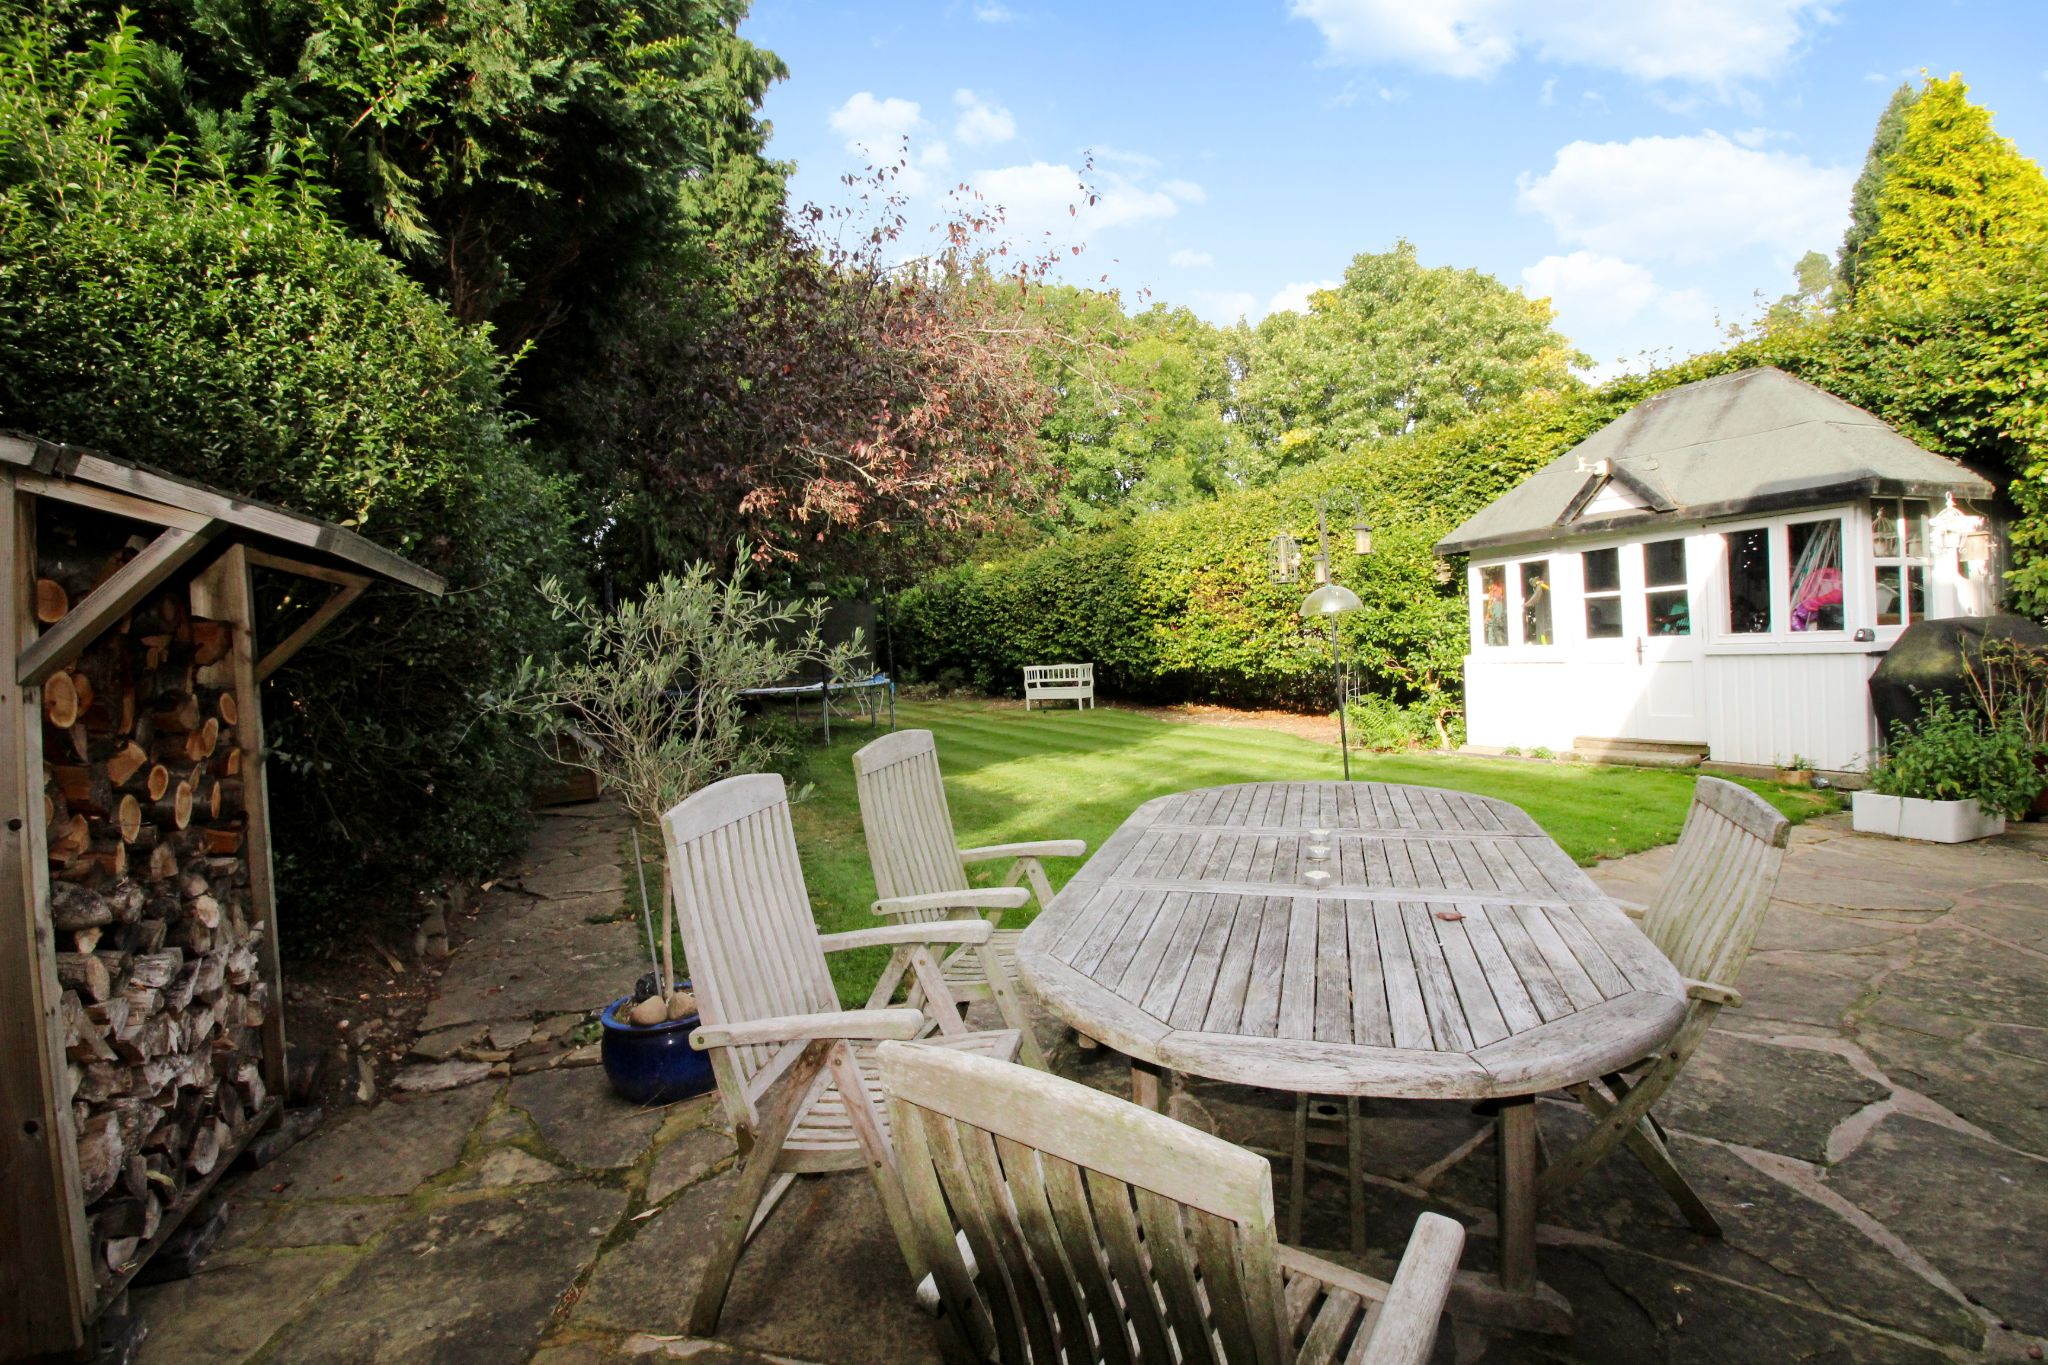 5 bedroom detached house For Sale in Solihull - Photograph 20.